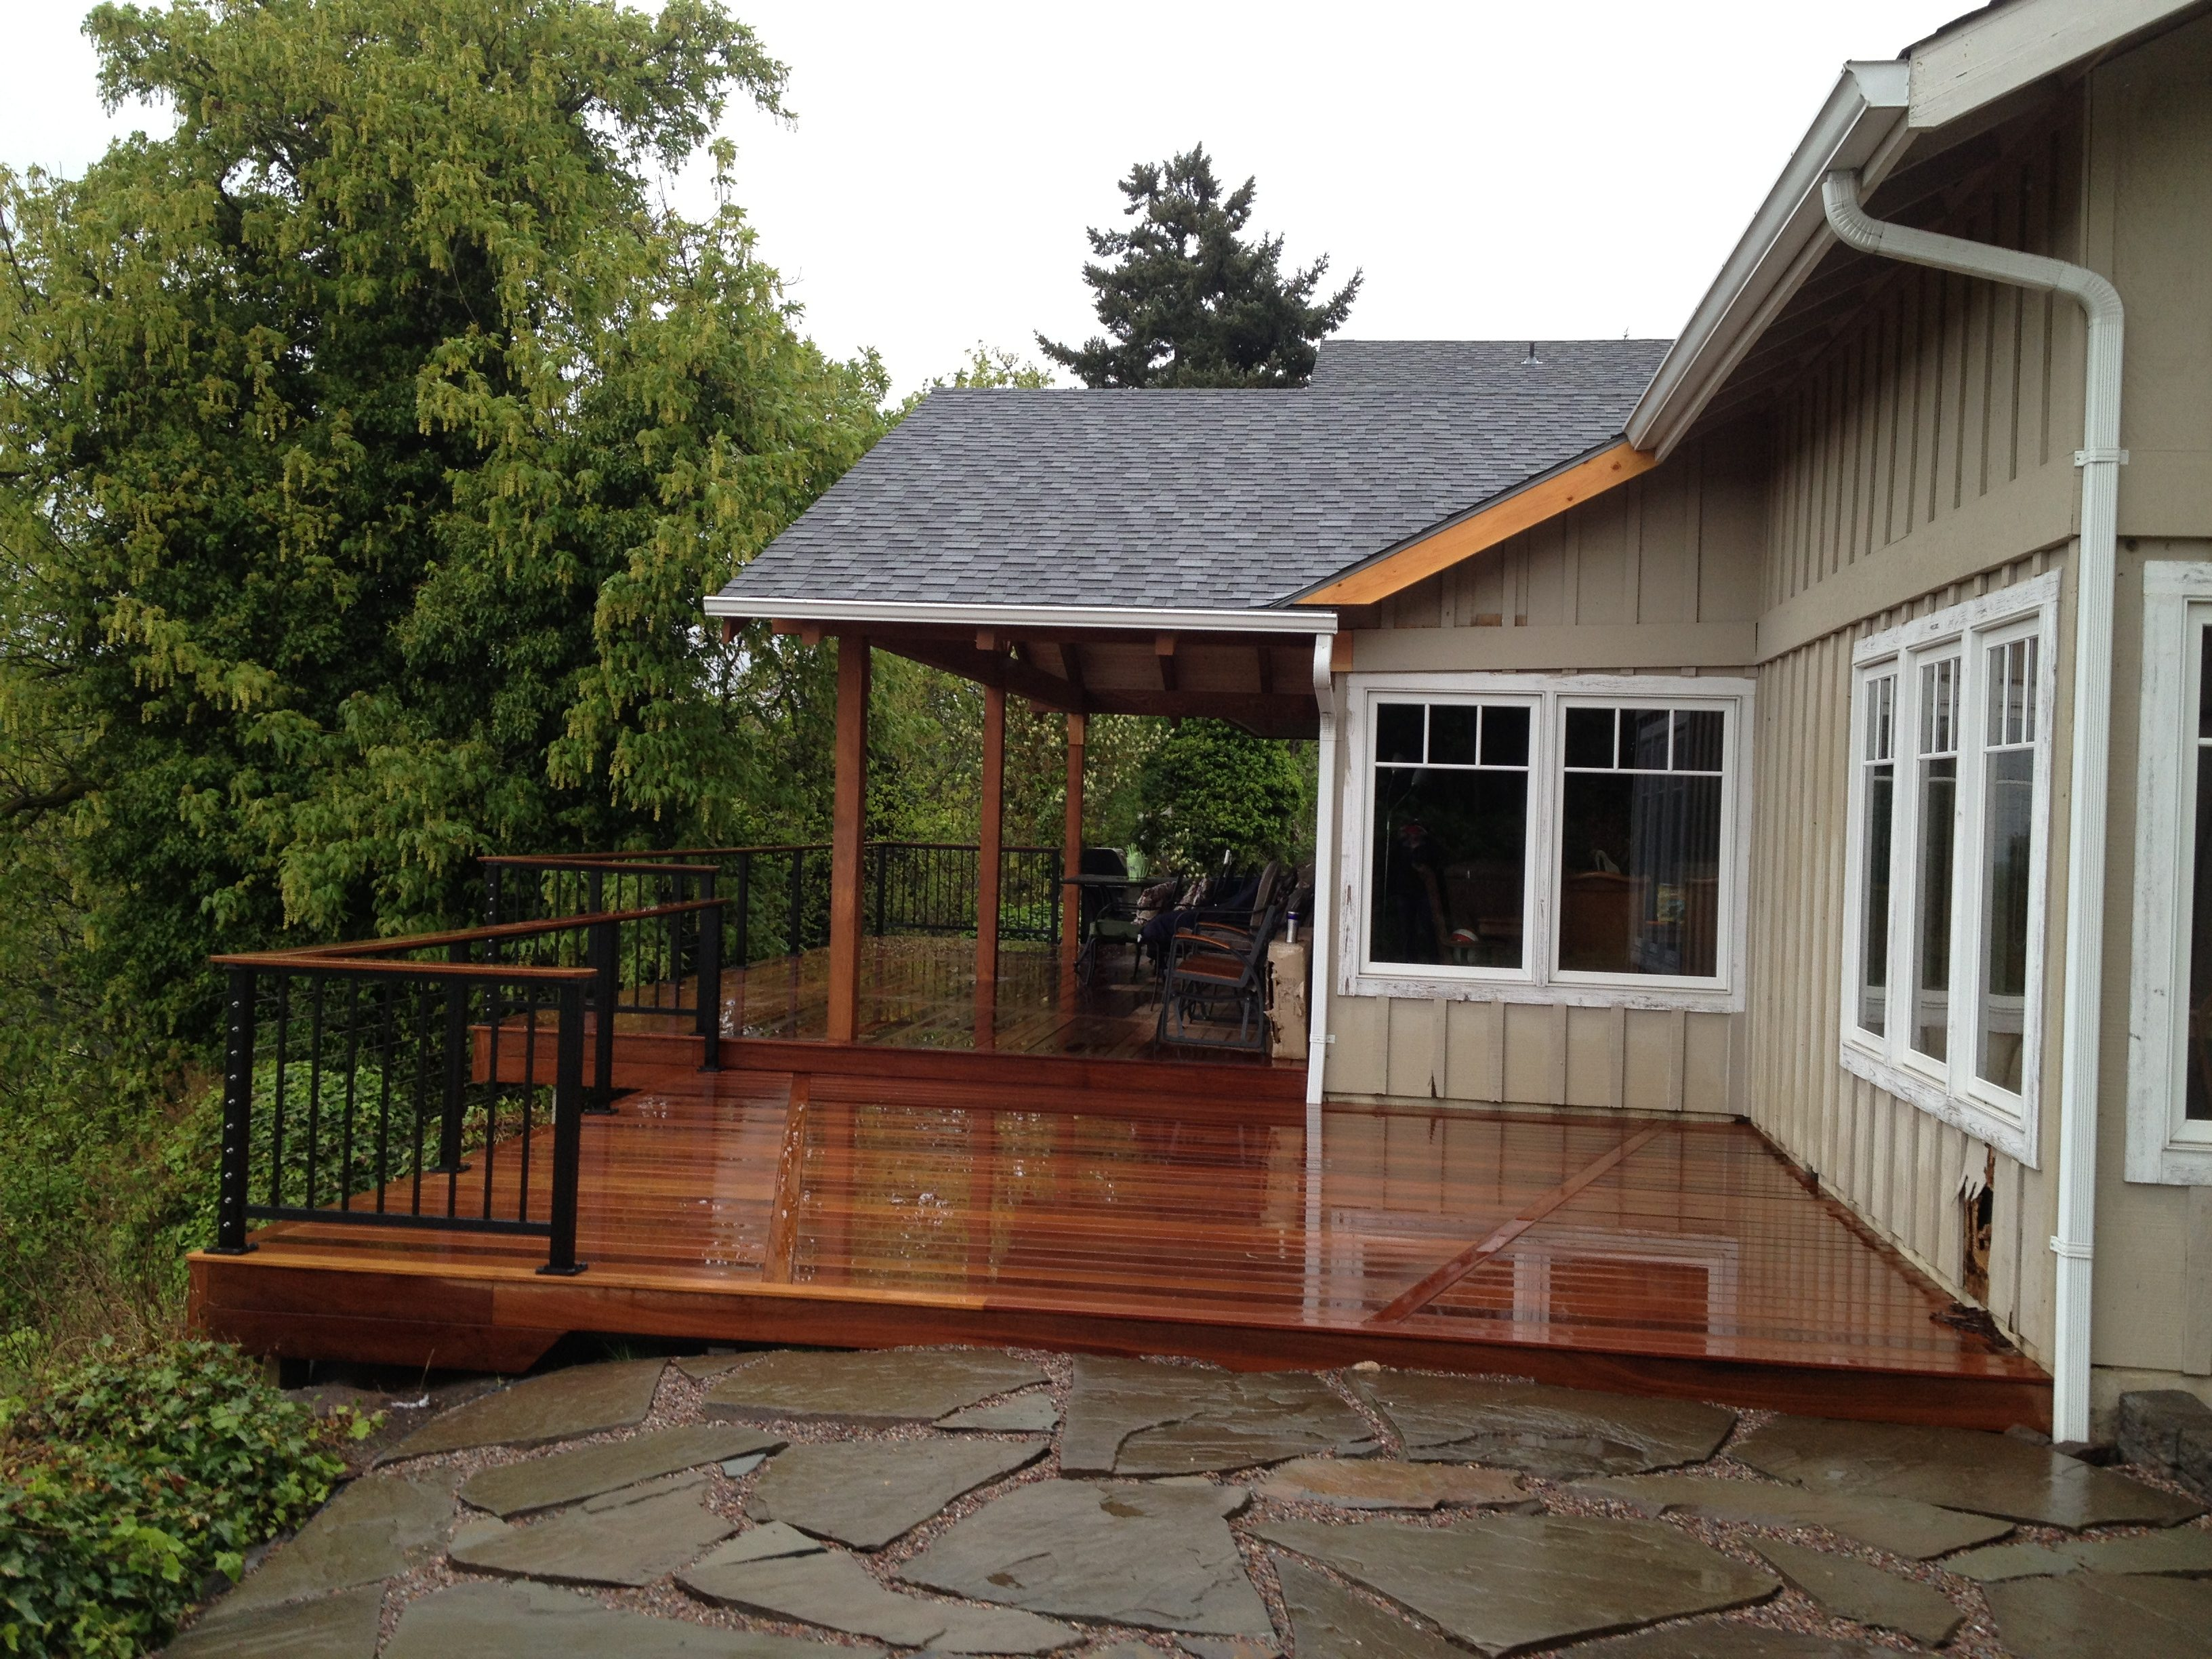 Ironwood deck with alumarail and overhang addition tied into home